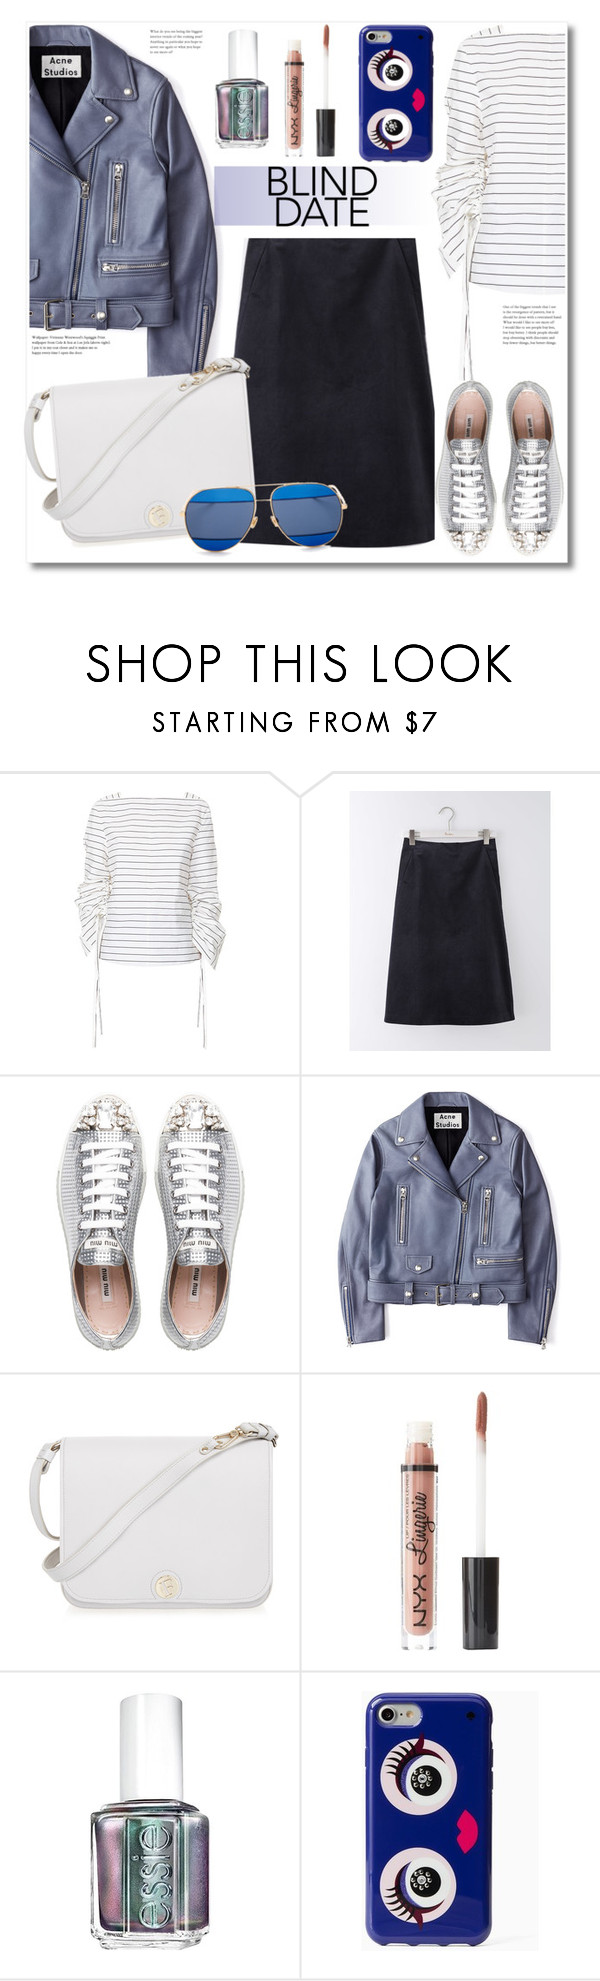 """""""Get the look"""" by vkmd ❤ liked on Polyvore featuring TIBI, Boden, Miu Miu, Acne Studios, Furla, Charlotte Russe, Essie, Kate Spade, Christian Dior and blinddate"""